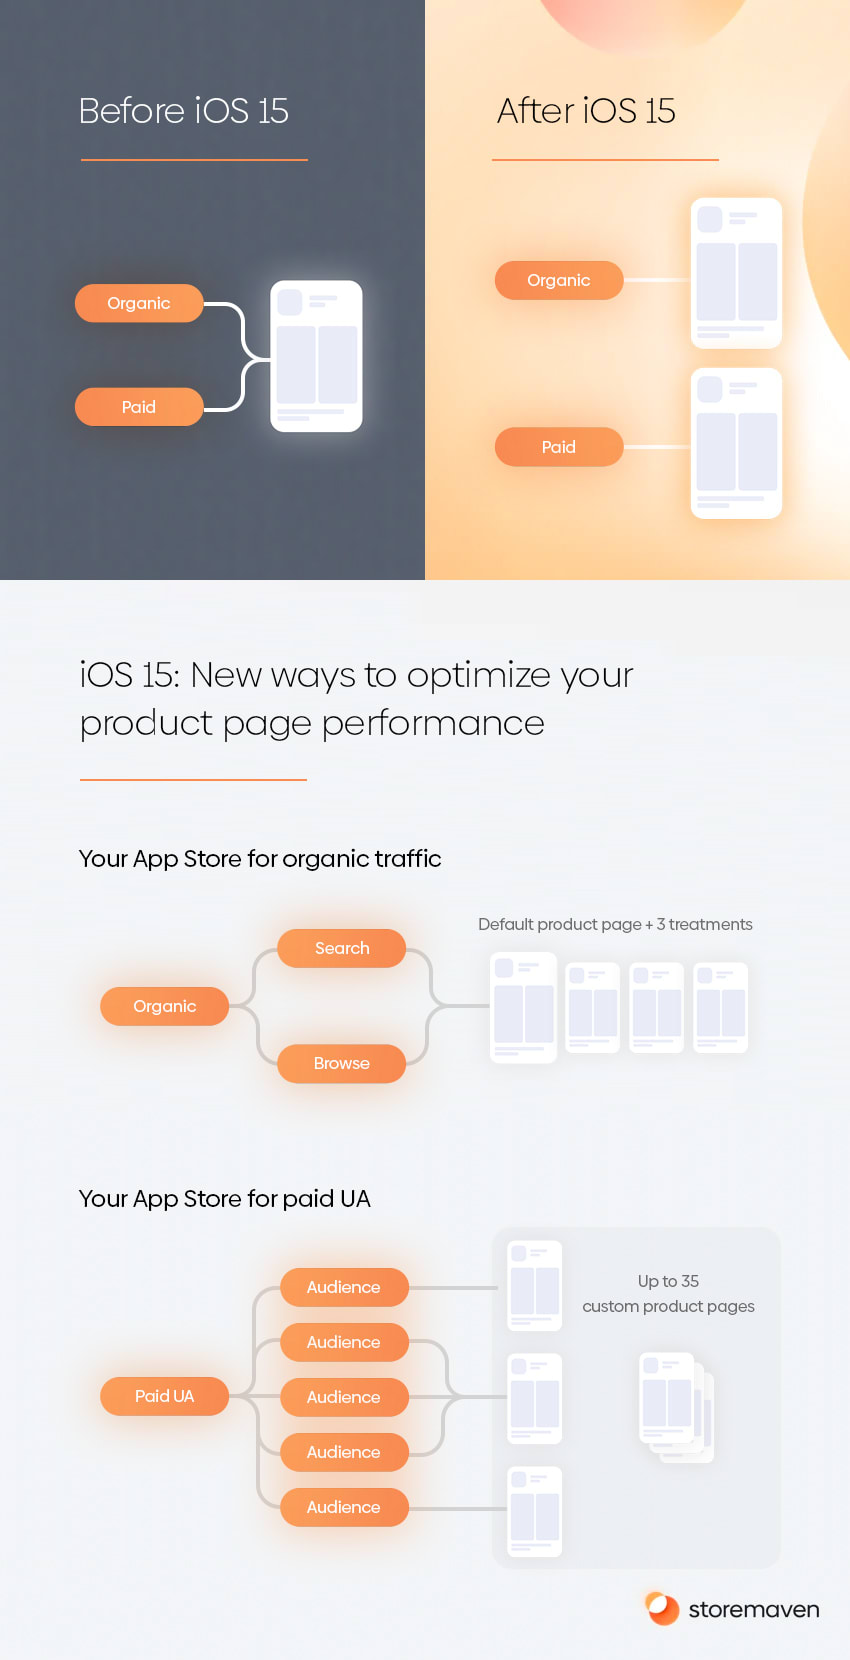 iOS 15 New Features for ASO: Product Page Optimization and Custom Product Pages